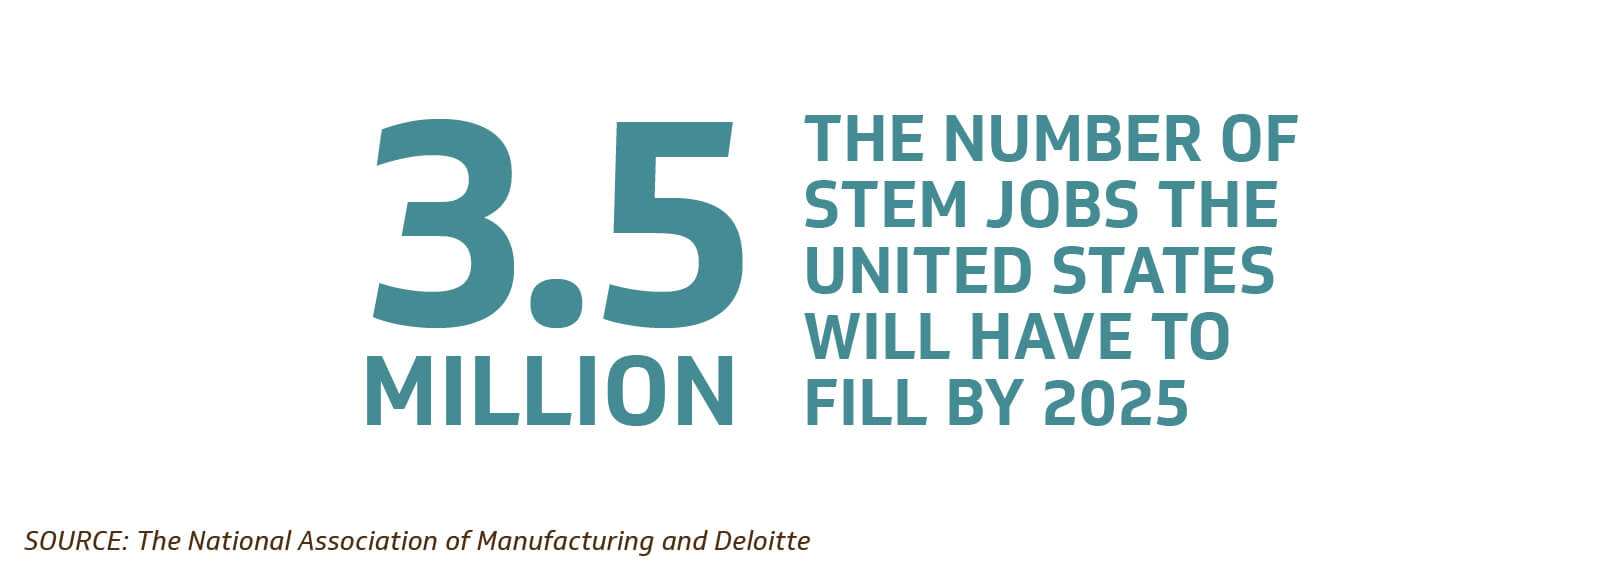 US will have to fill 3.5 million stem jobs by 2025